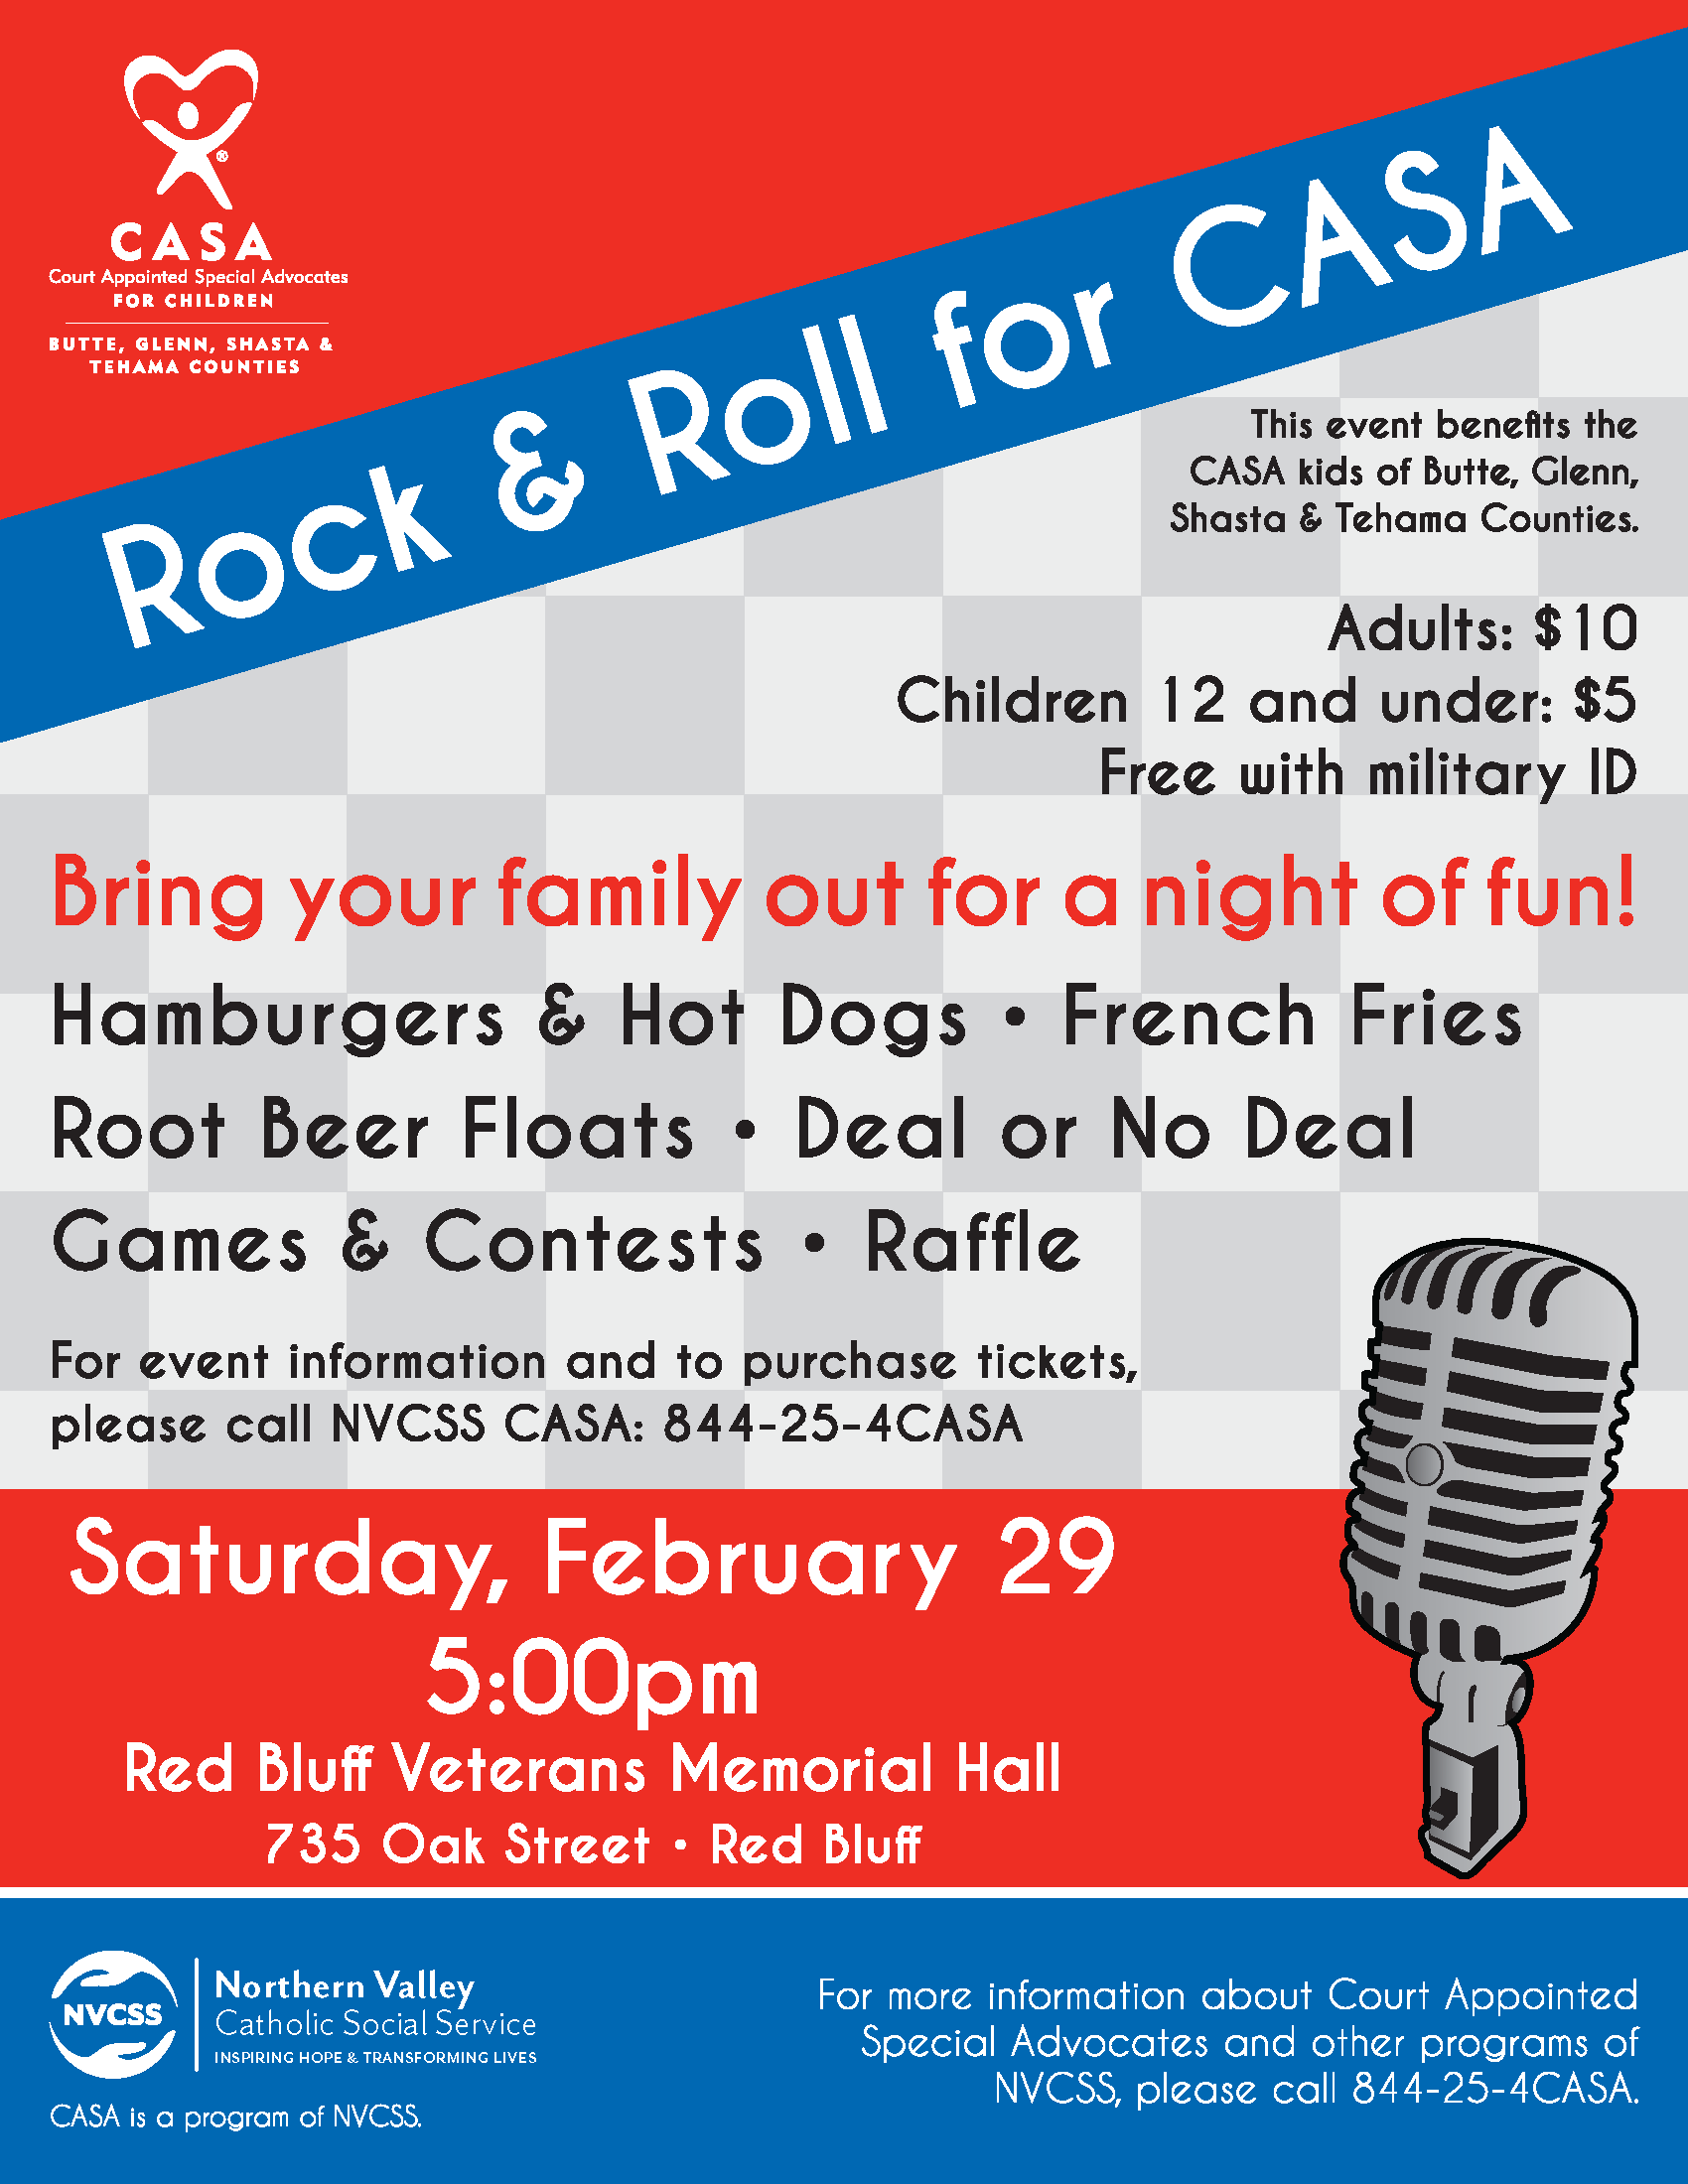 Rock & Roll For Casa - Nvcss Throughout Tehama County Court Calendar